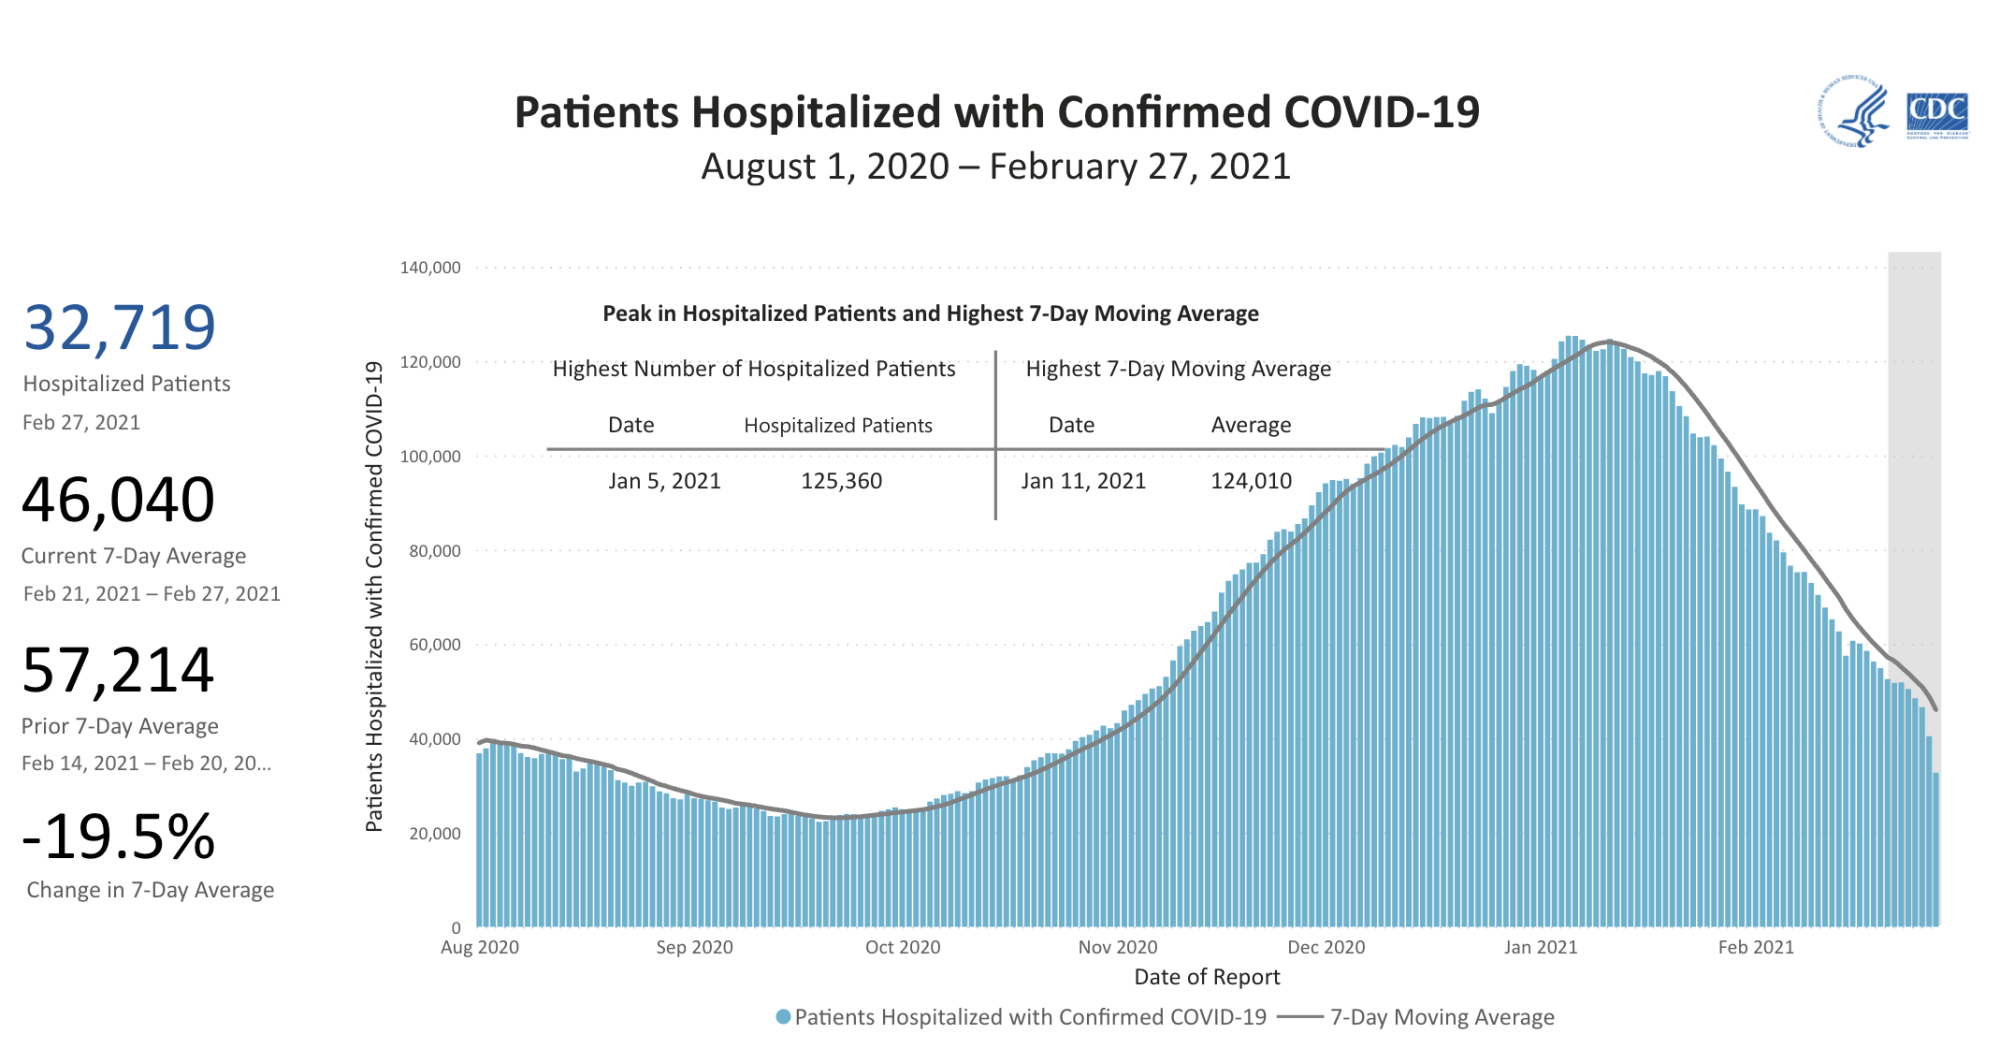 Chart showing the 7-day moving average of patients hospitalized with confirmed COVID-19 over time from August 1, 2020 through February 27, 2021. The chart begins with a value of about 40,000 in August 2020, rises to a peak of about 125,000 in January 2021, and gives the most recent 7-day average of hospitalized patients as 46,040, a decrease of 19% over the previous week.